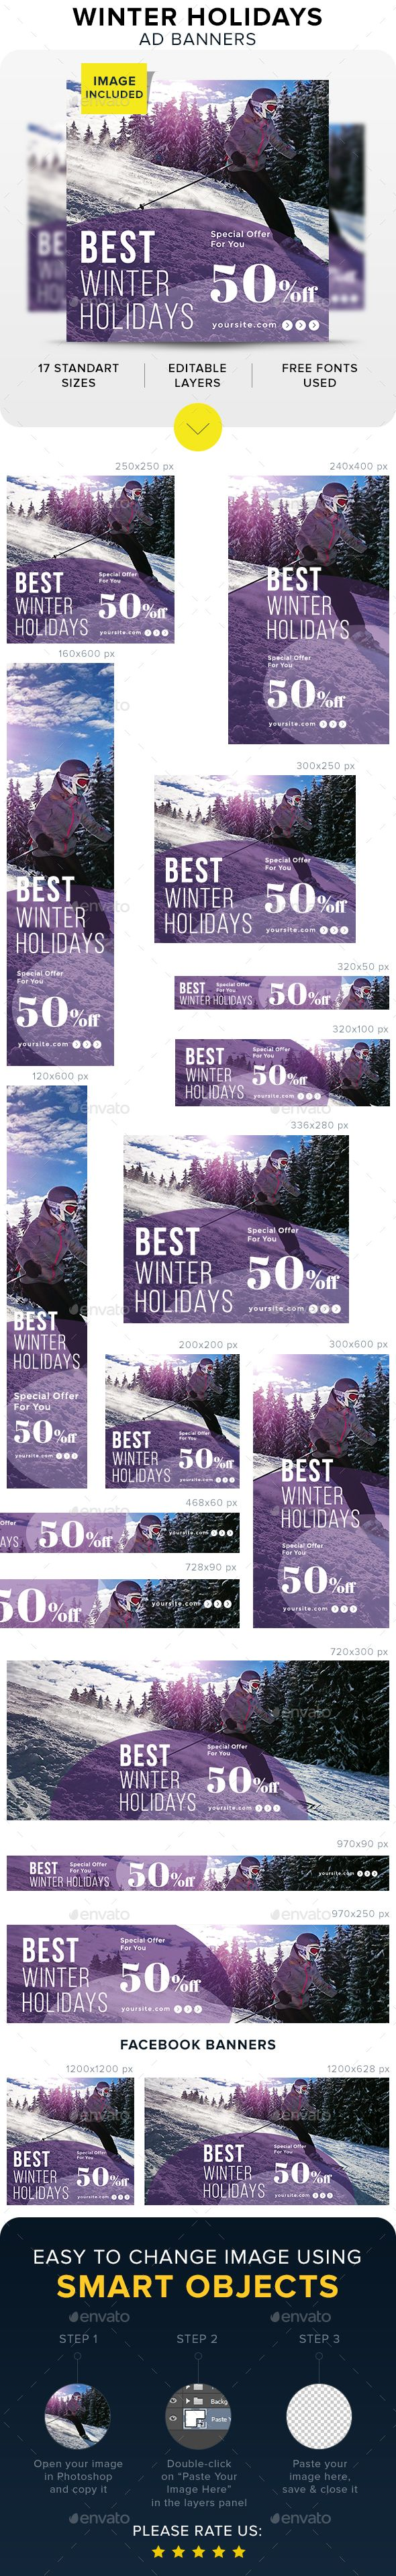 Winter Holidays Banners - Banners & Ads Web Elements Download here : https://graphicriver.net/item/winter-holidays-banners/19297706?s_rank=33&ref=Al-fatih